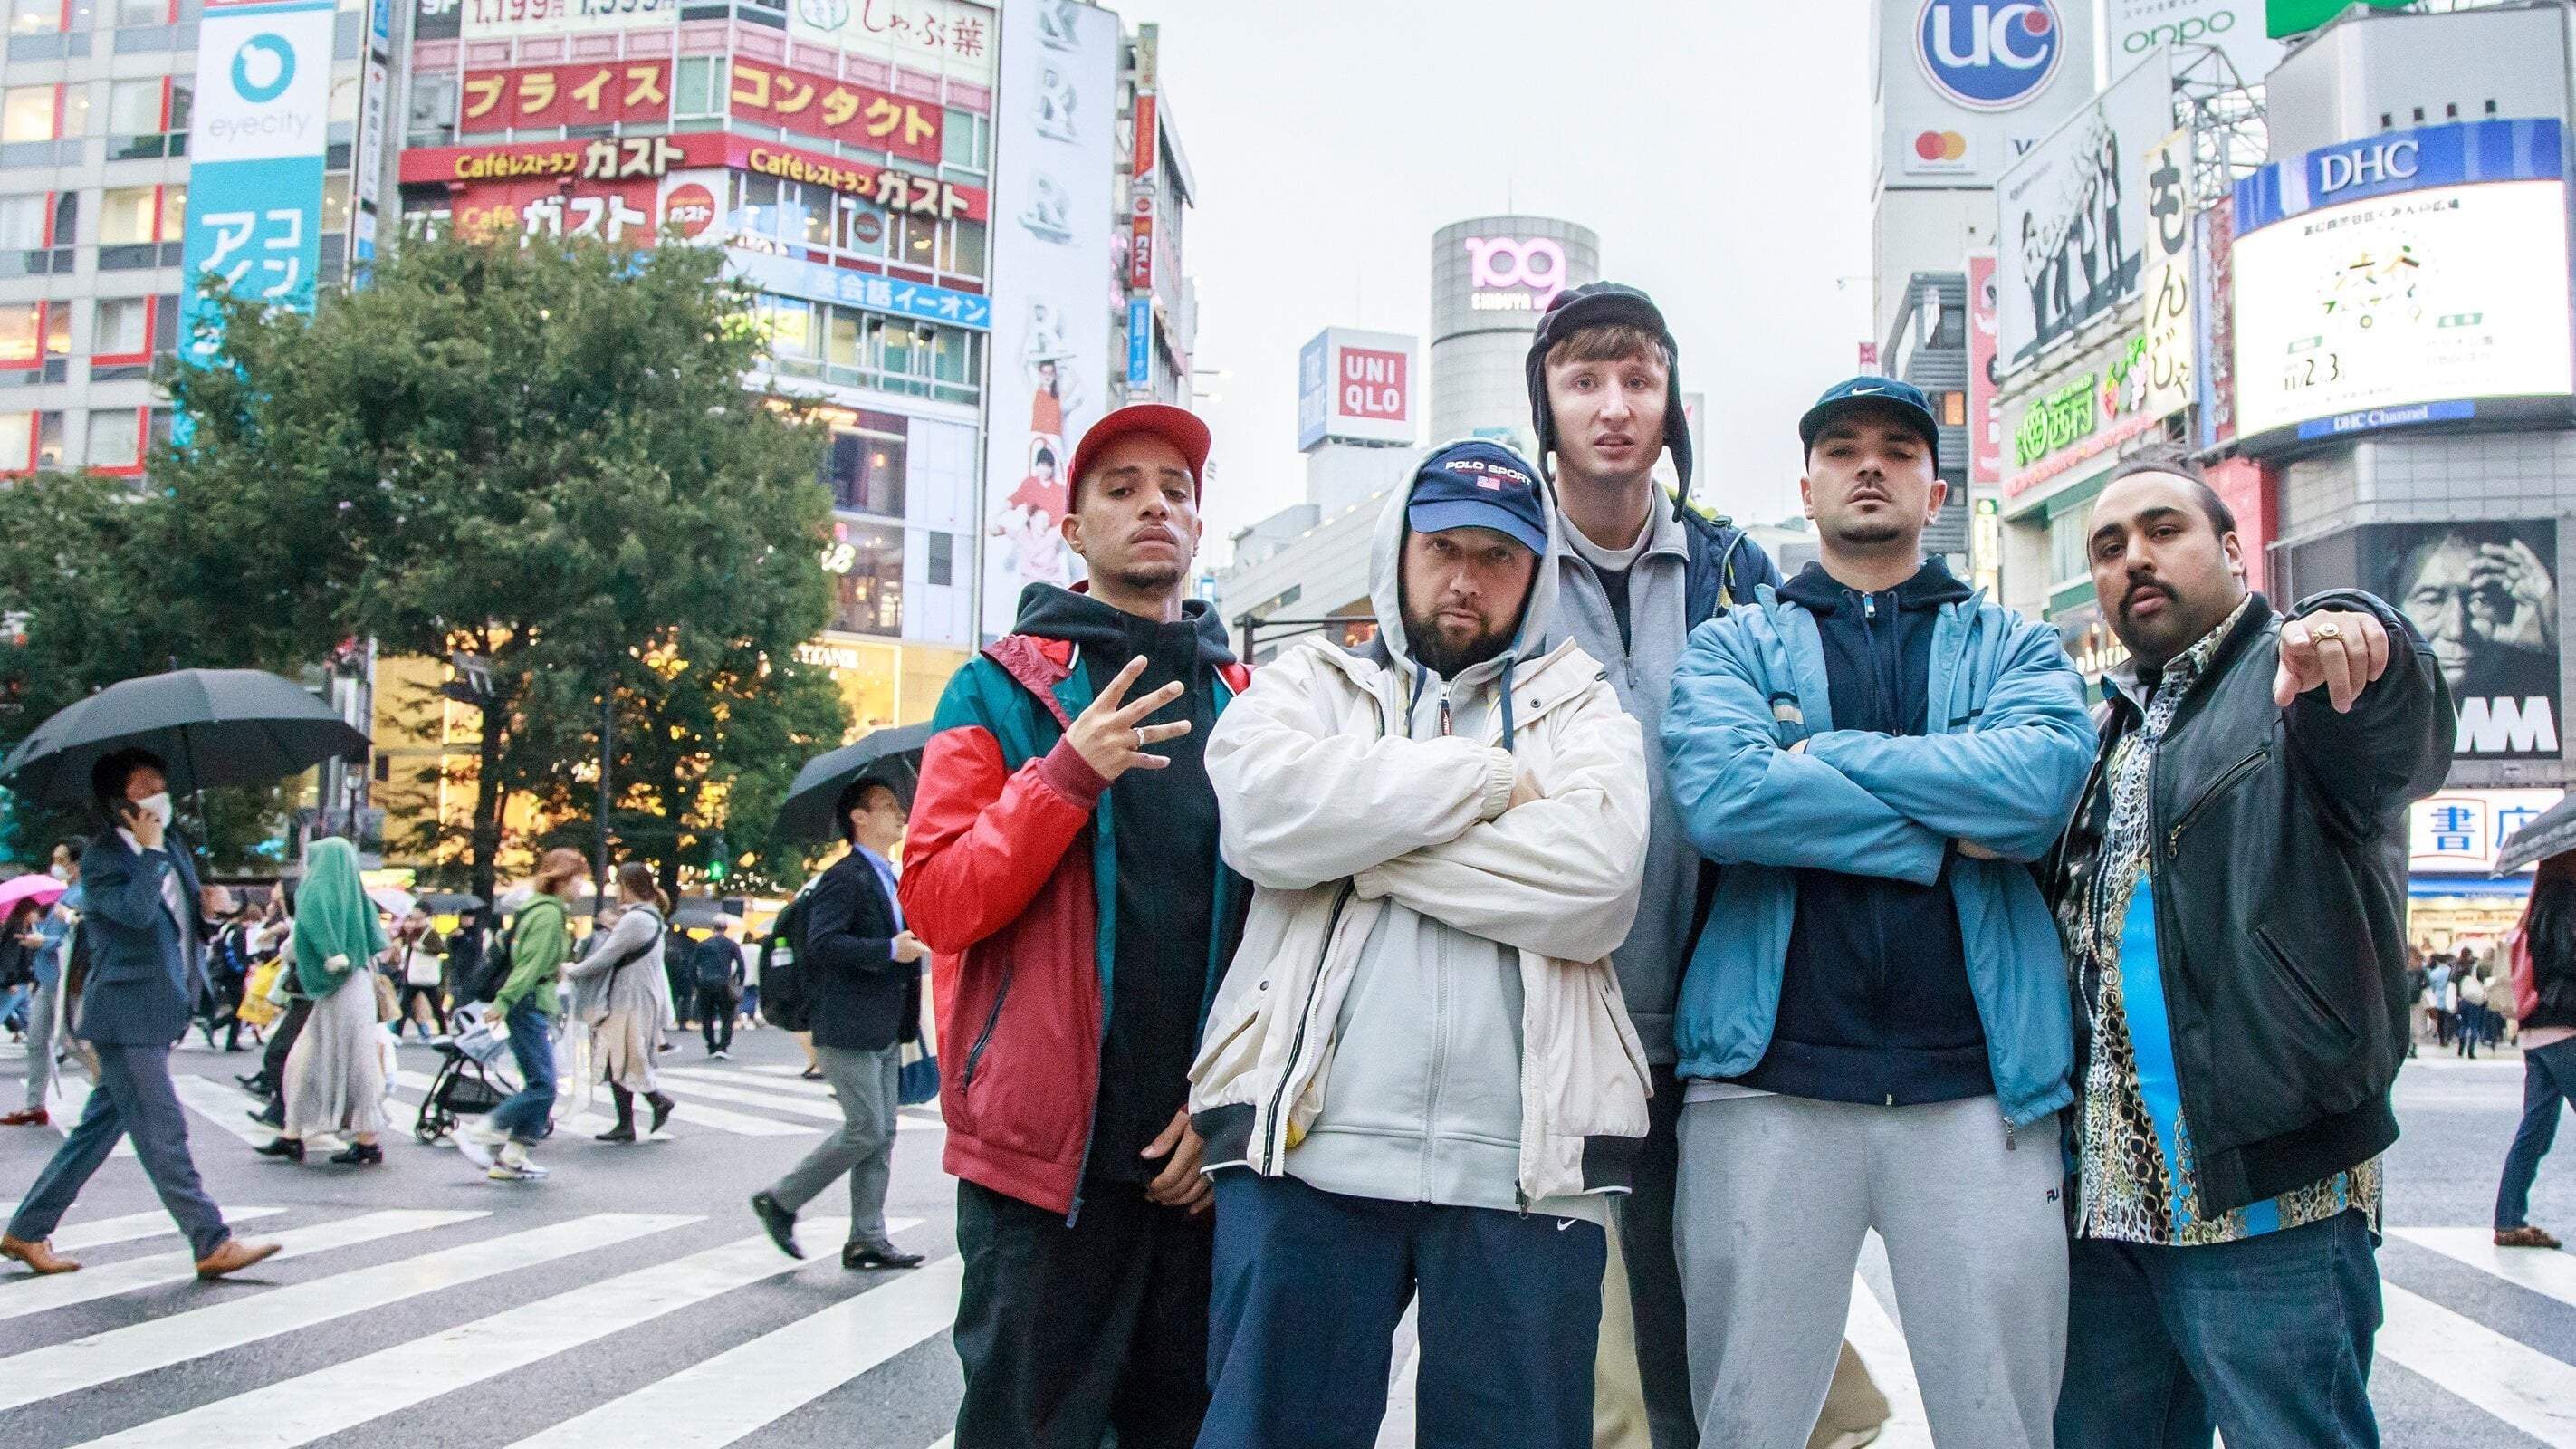 People Just Do Nothing: Big in Japan (2021) movie download